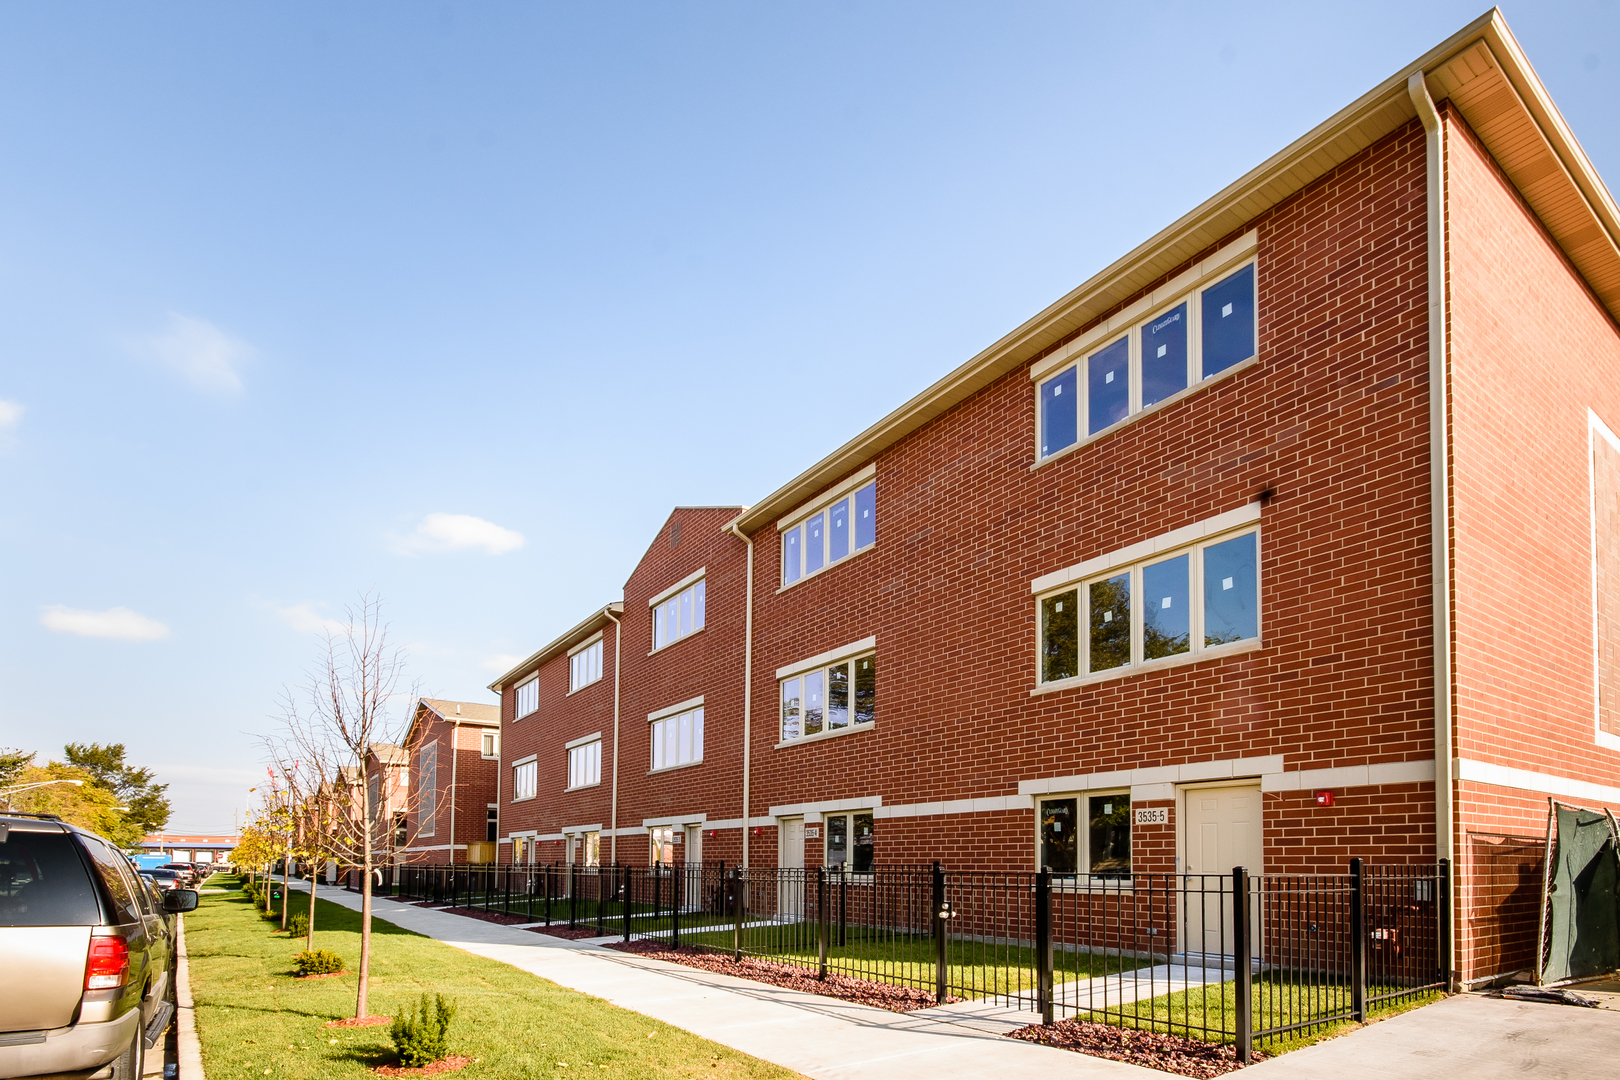 3541 SOUTH MAPLEWOOD AVENUE #1, CHICAGO, IL 60632